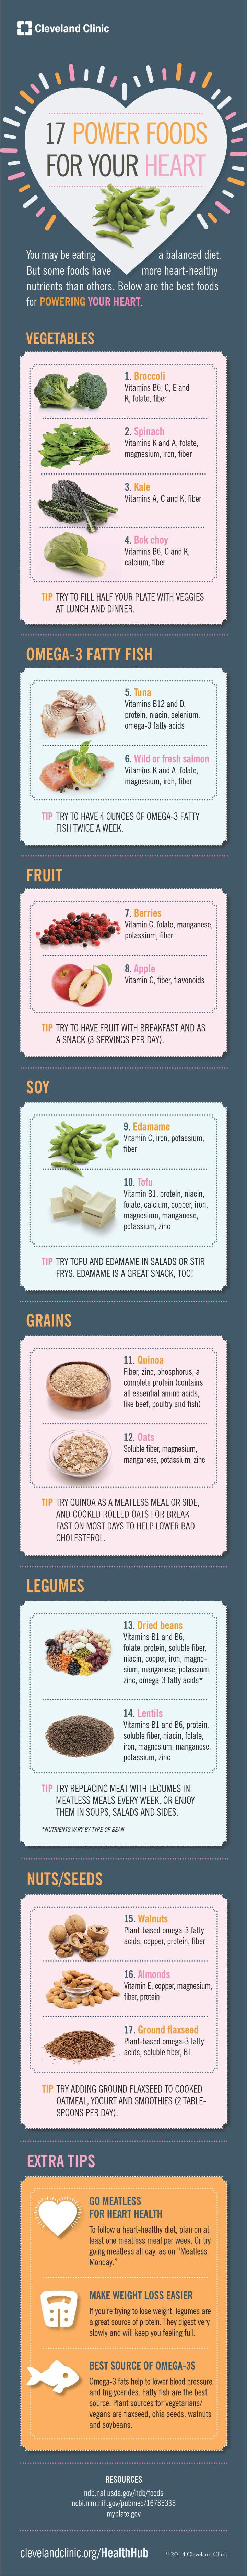 Power-Foods-for-Heart-Infographic_05.21.2014 720x4981__optimized